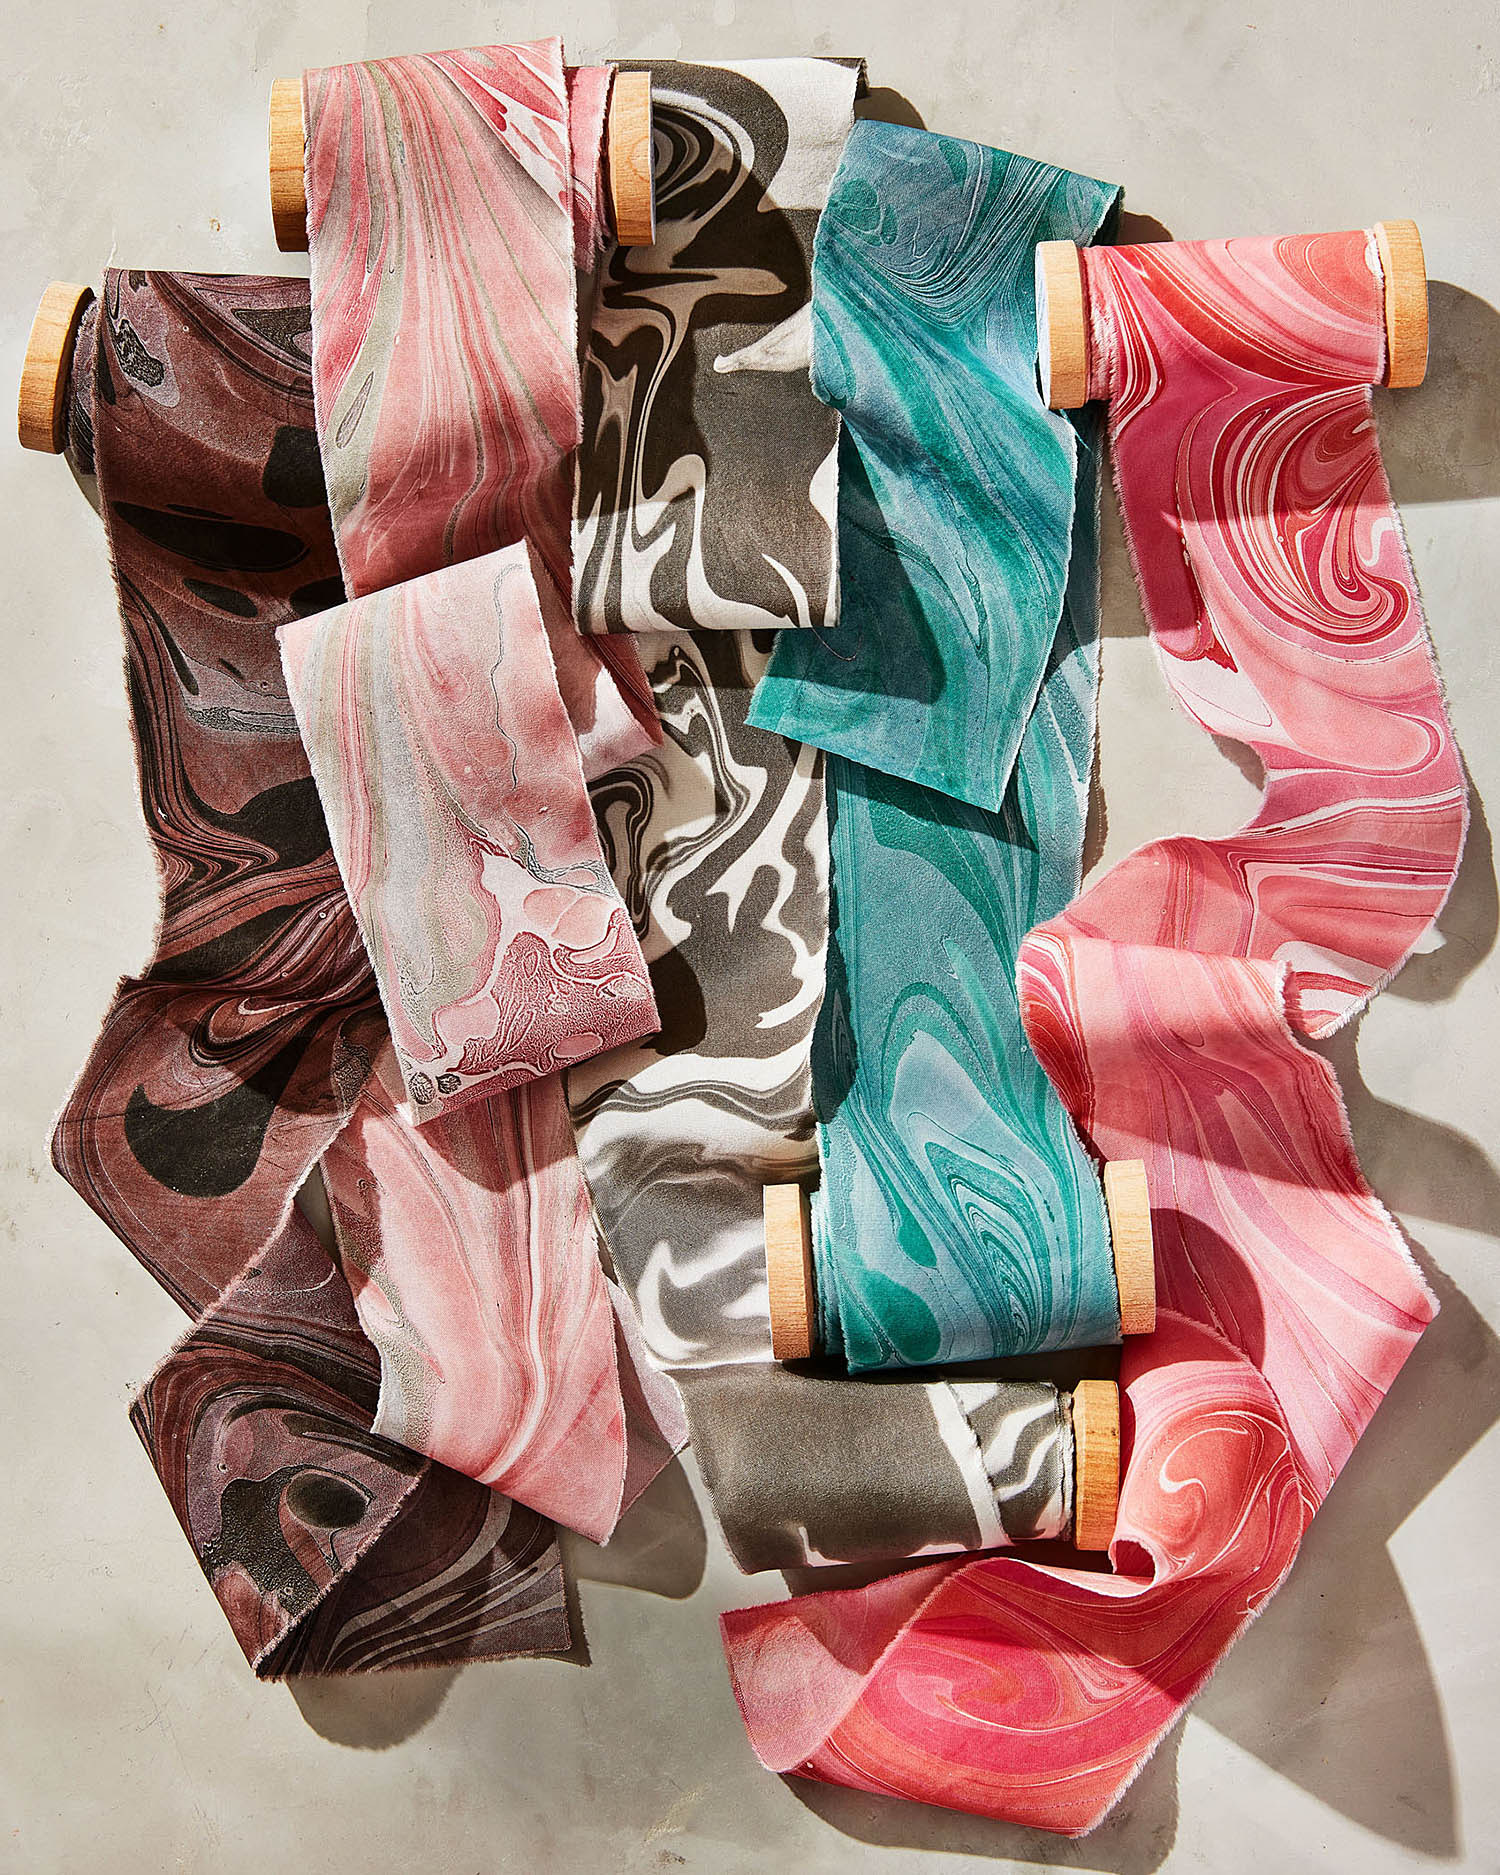 assortment of marbled ribbons